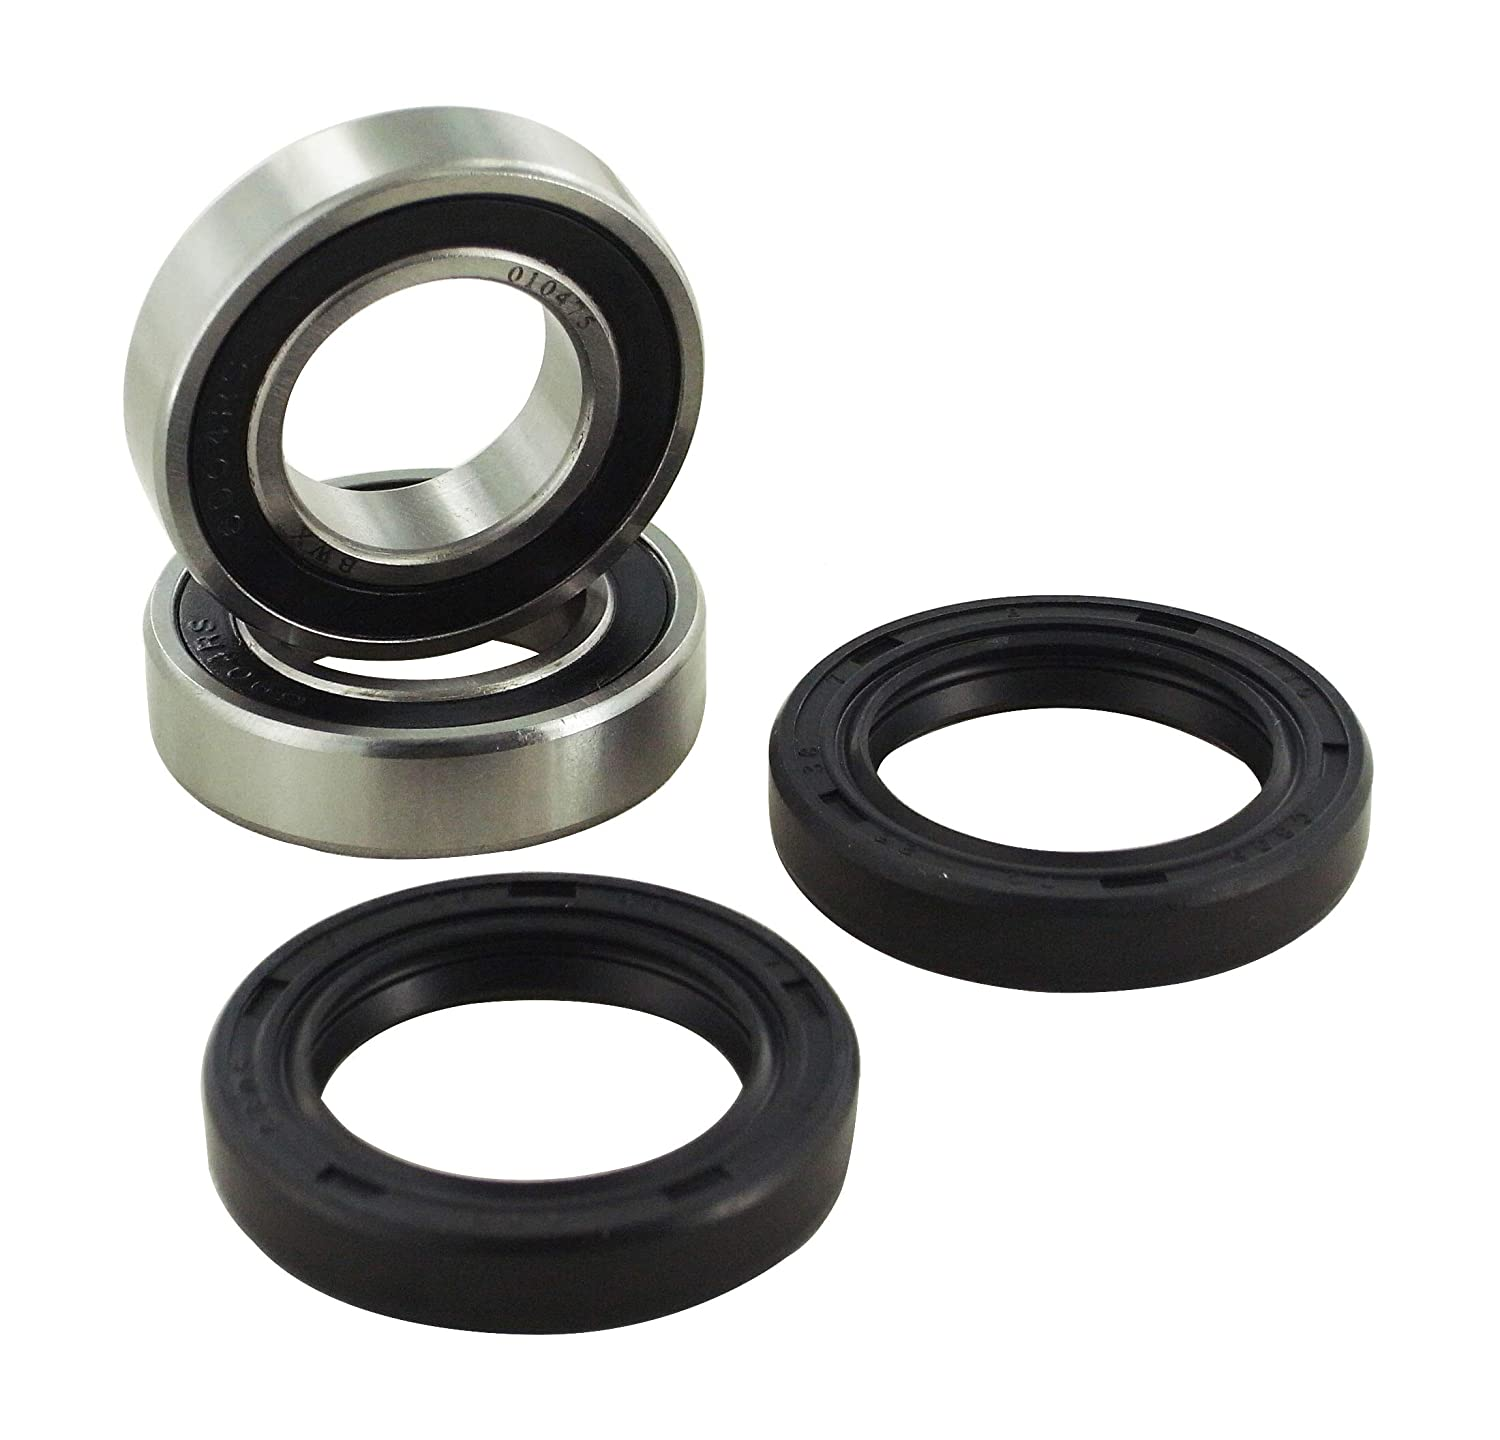 New HQ Powersports Front Wheel Replacement Shipping included Yamaha for Bearings Max 66% OFF Y